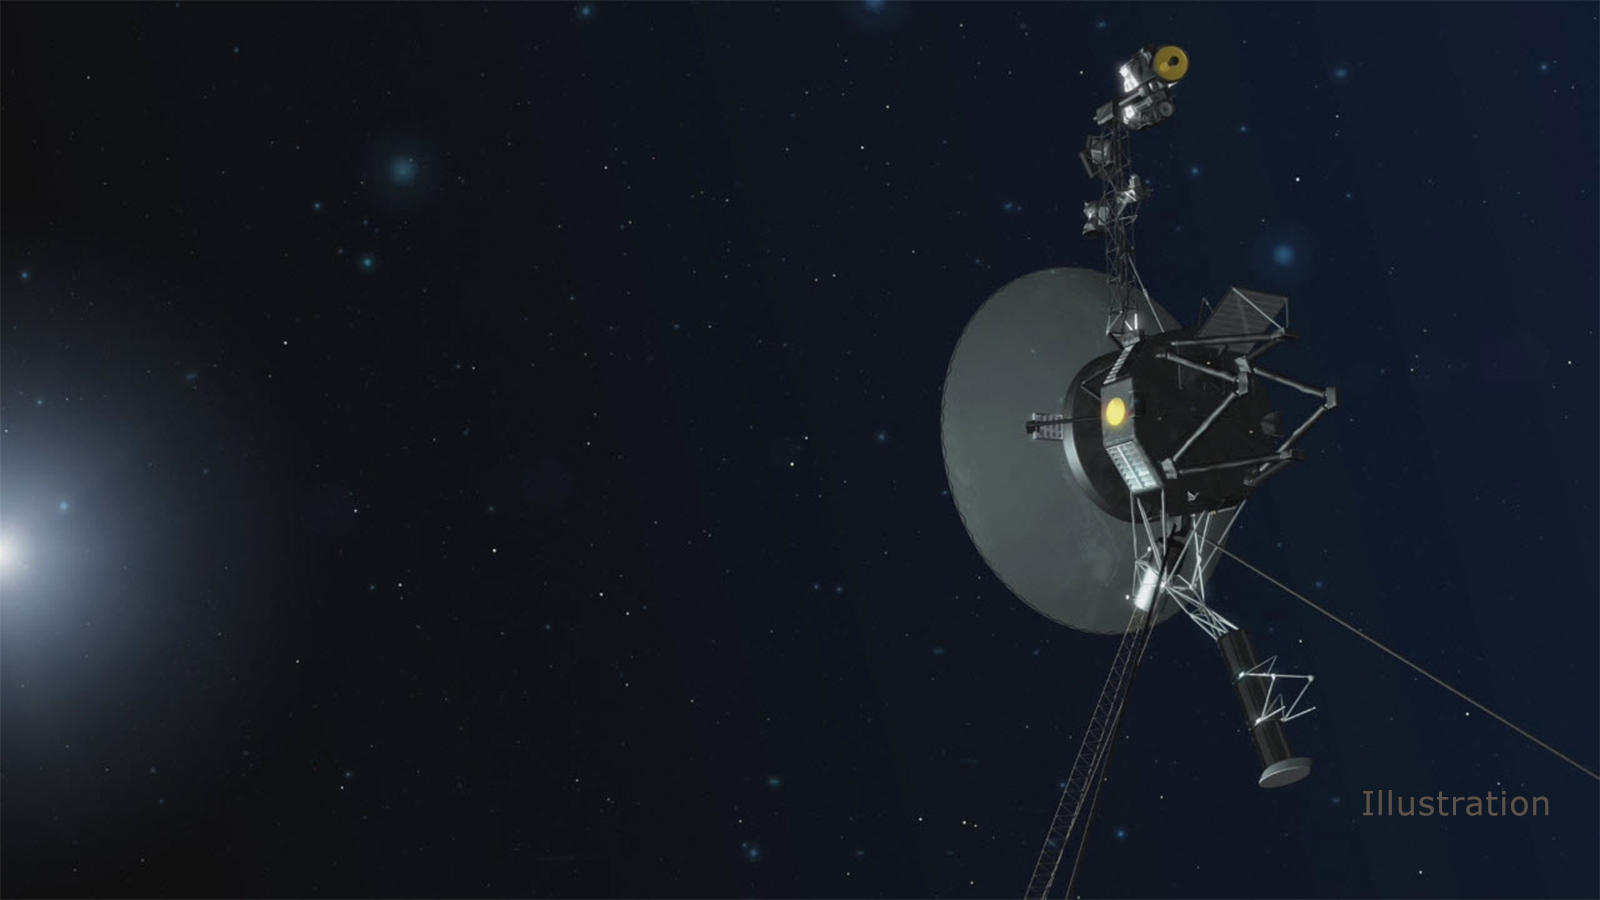 News | Voyager 1 Fires Up Thrusters After 37 Years